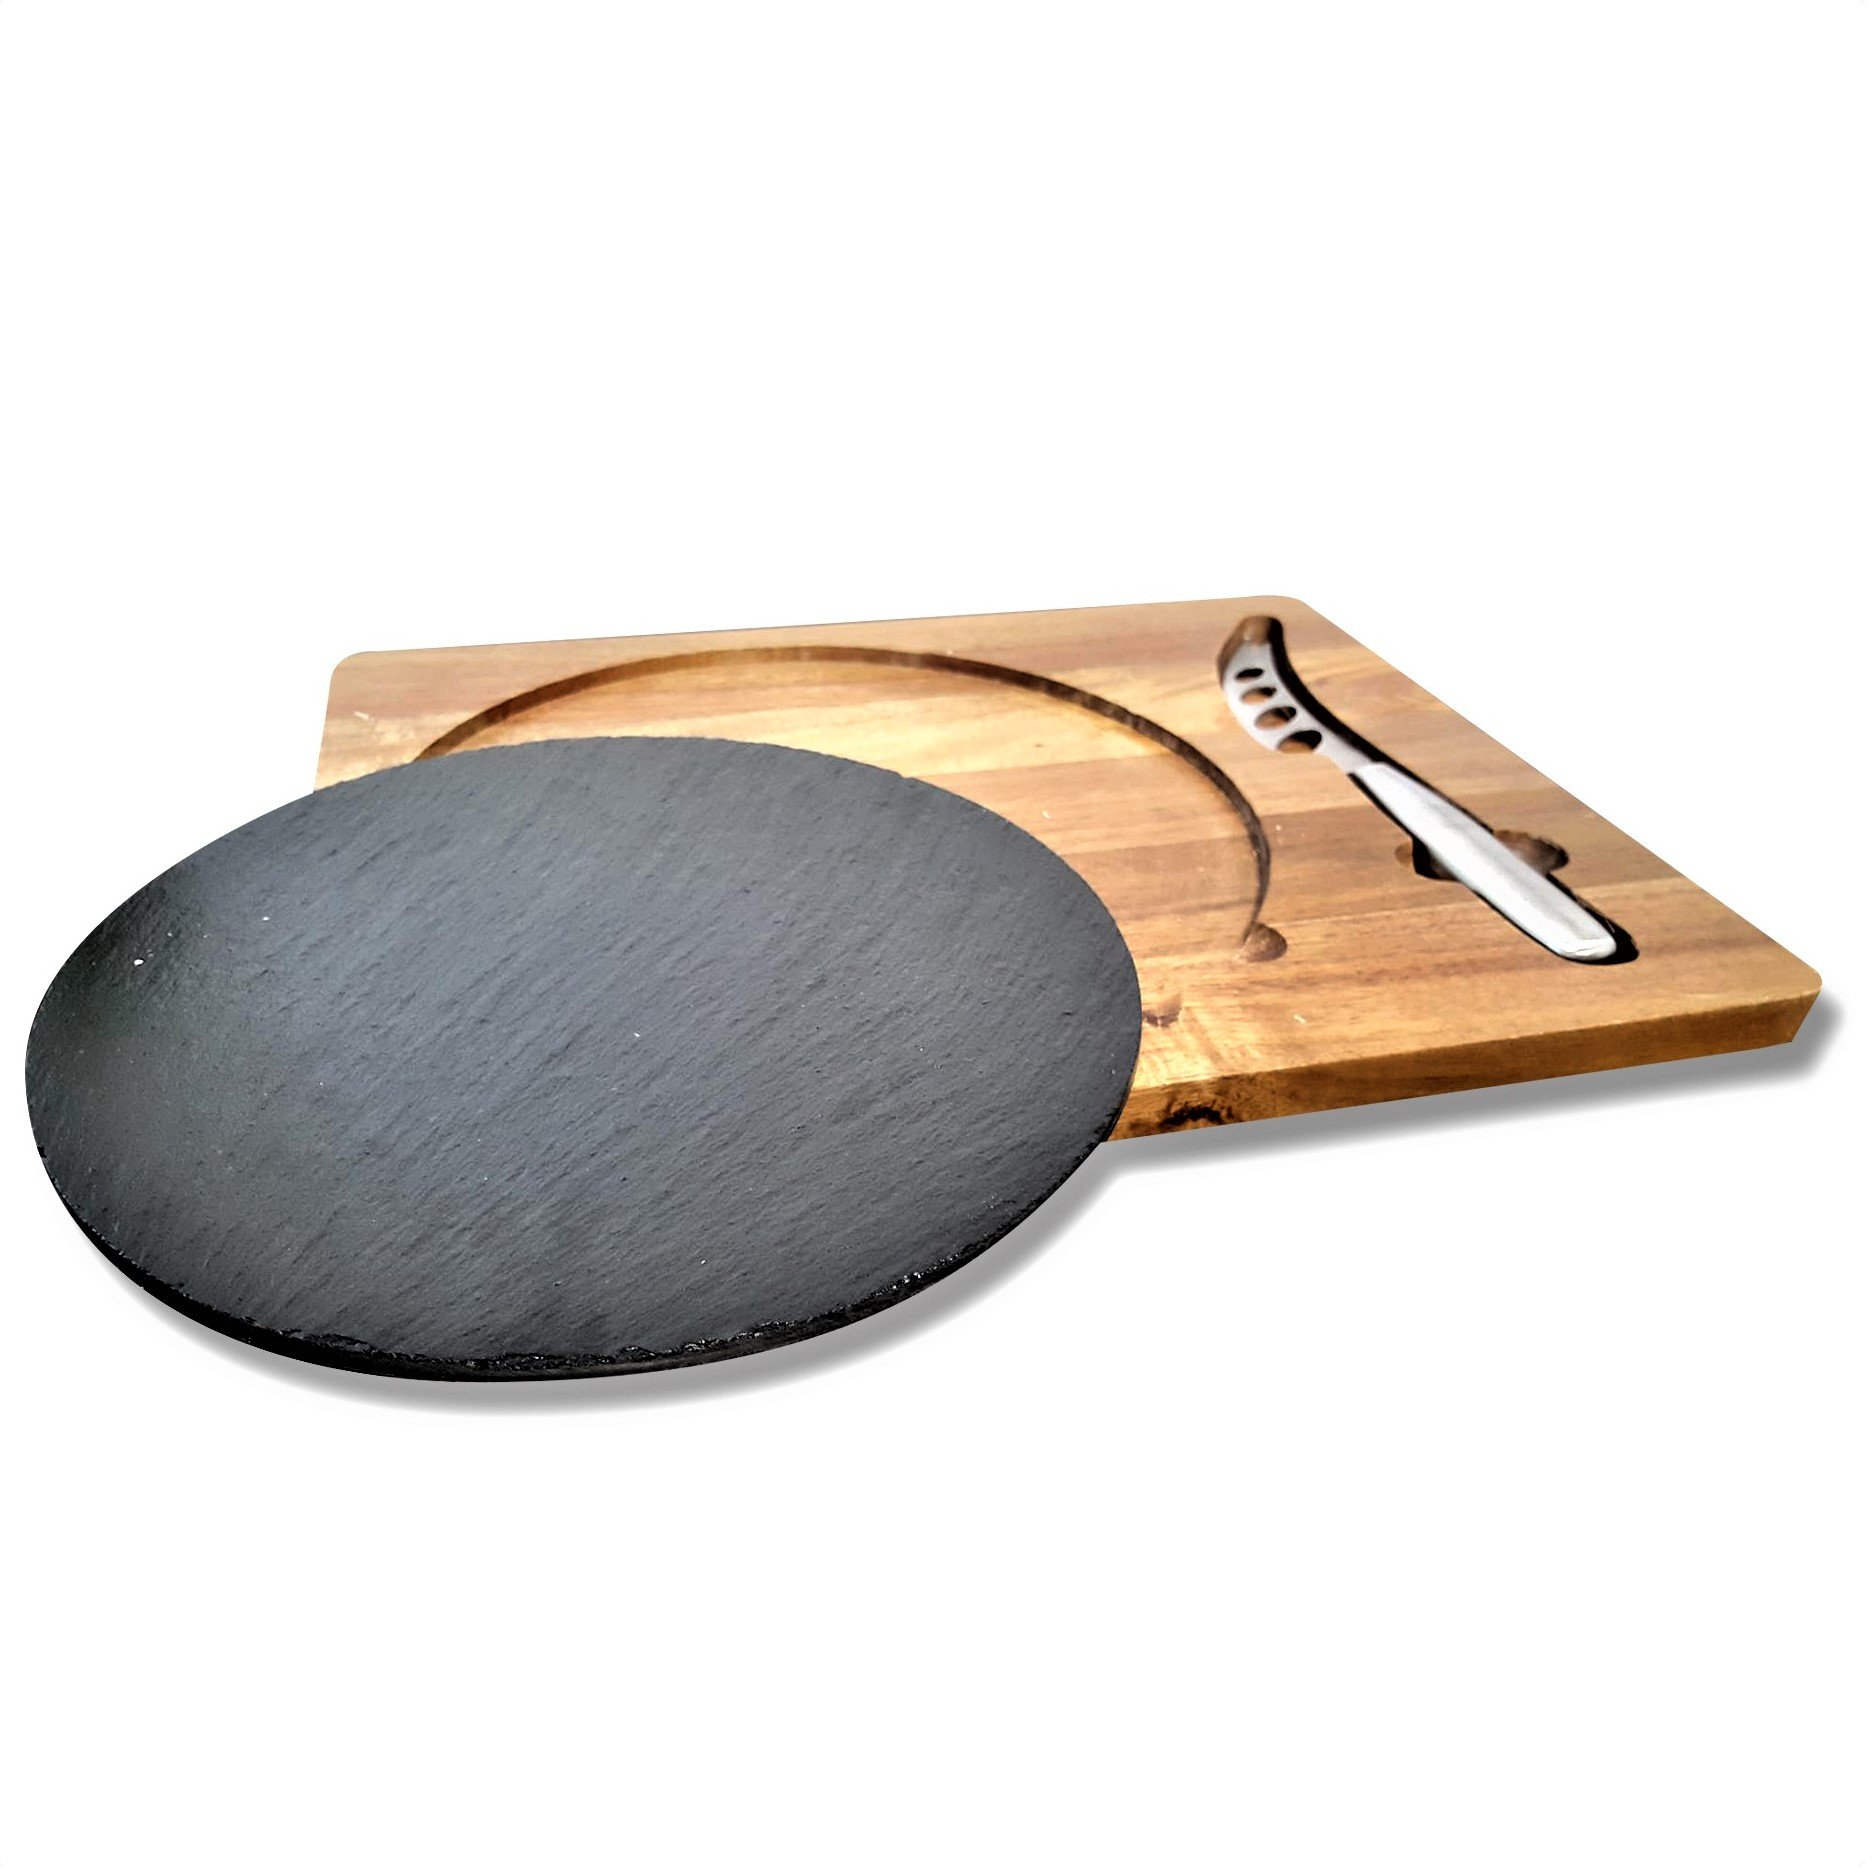 Cheese Board and Knife Set - Slate with wooden serving board - Stainless Steel Knife - Great for Restaurant, Restaurantware, Home, Cafe